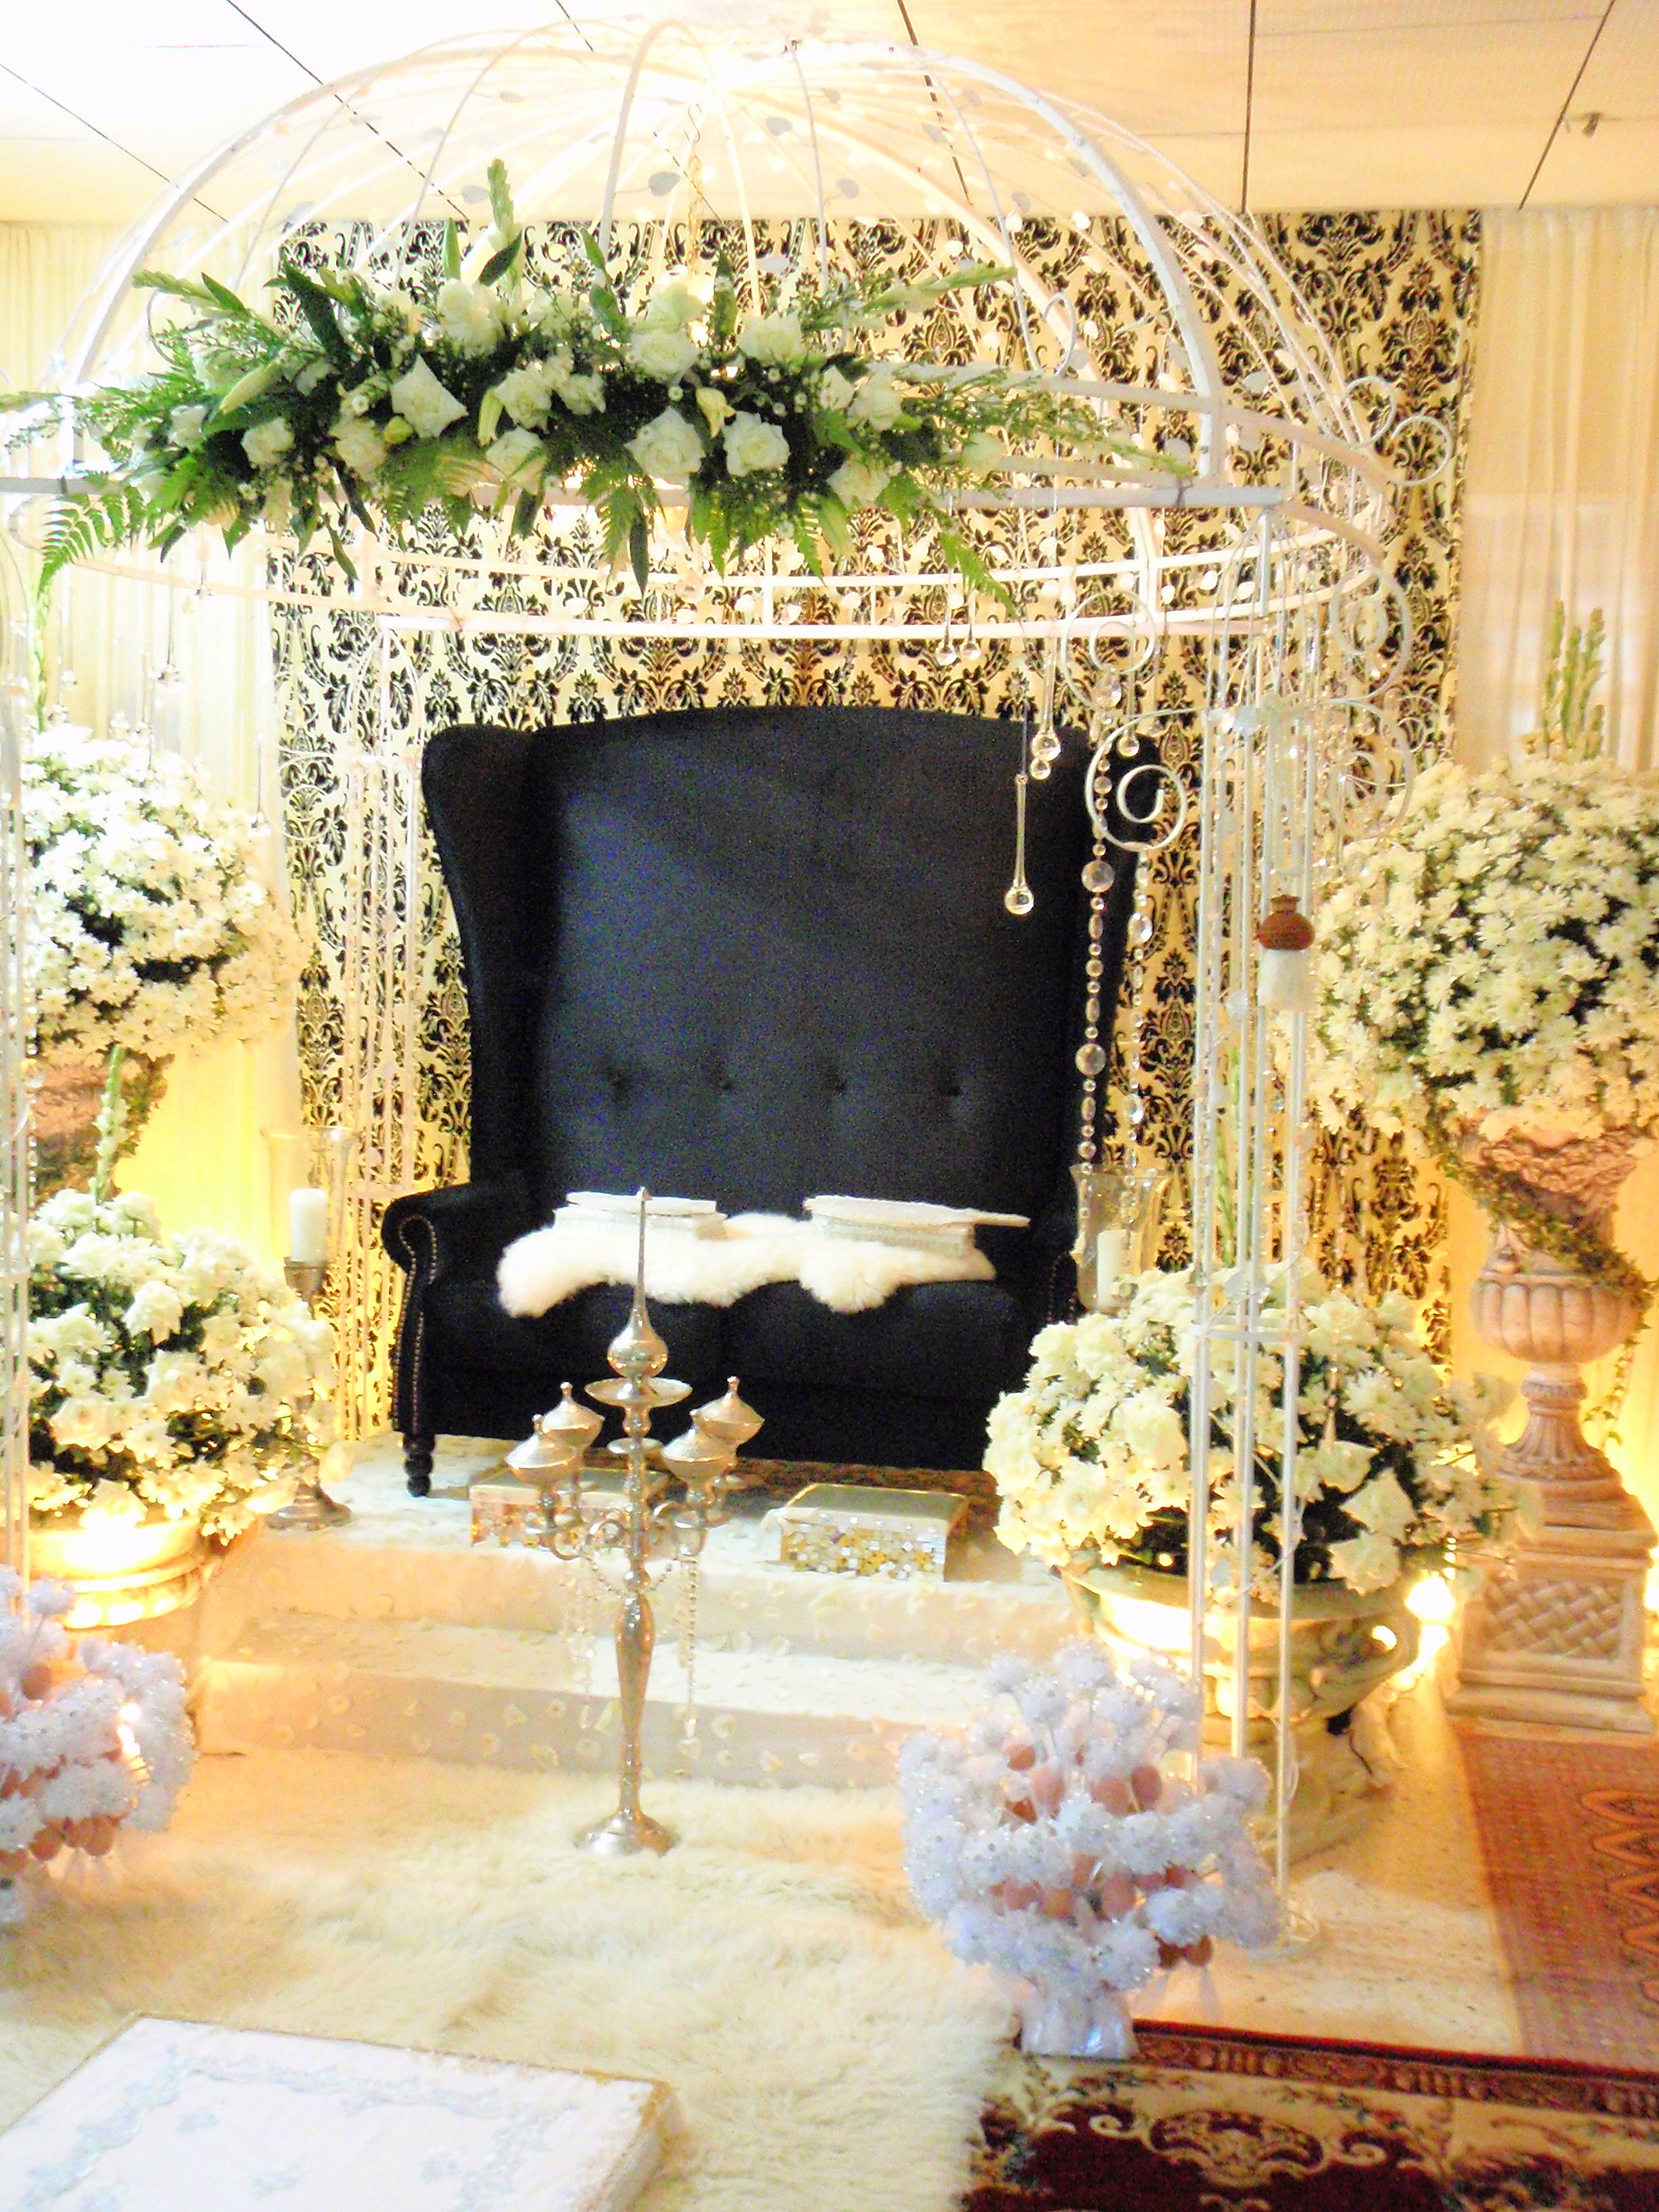 Pics for house decorations for wedding How to decorate small house